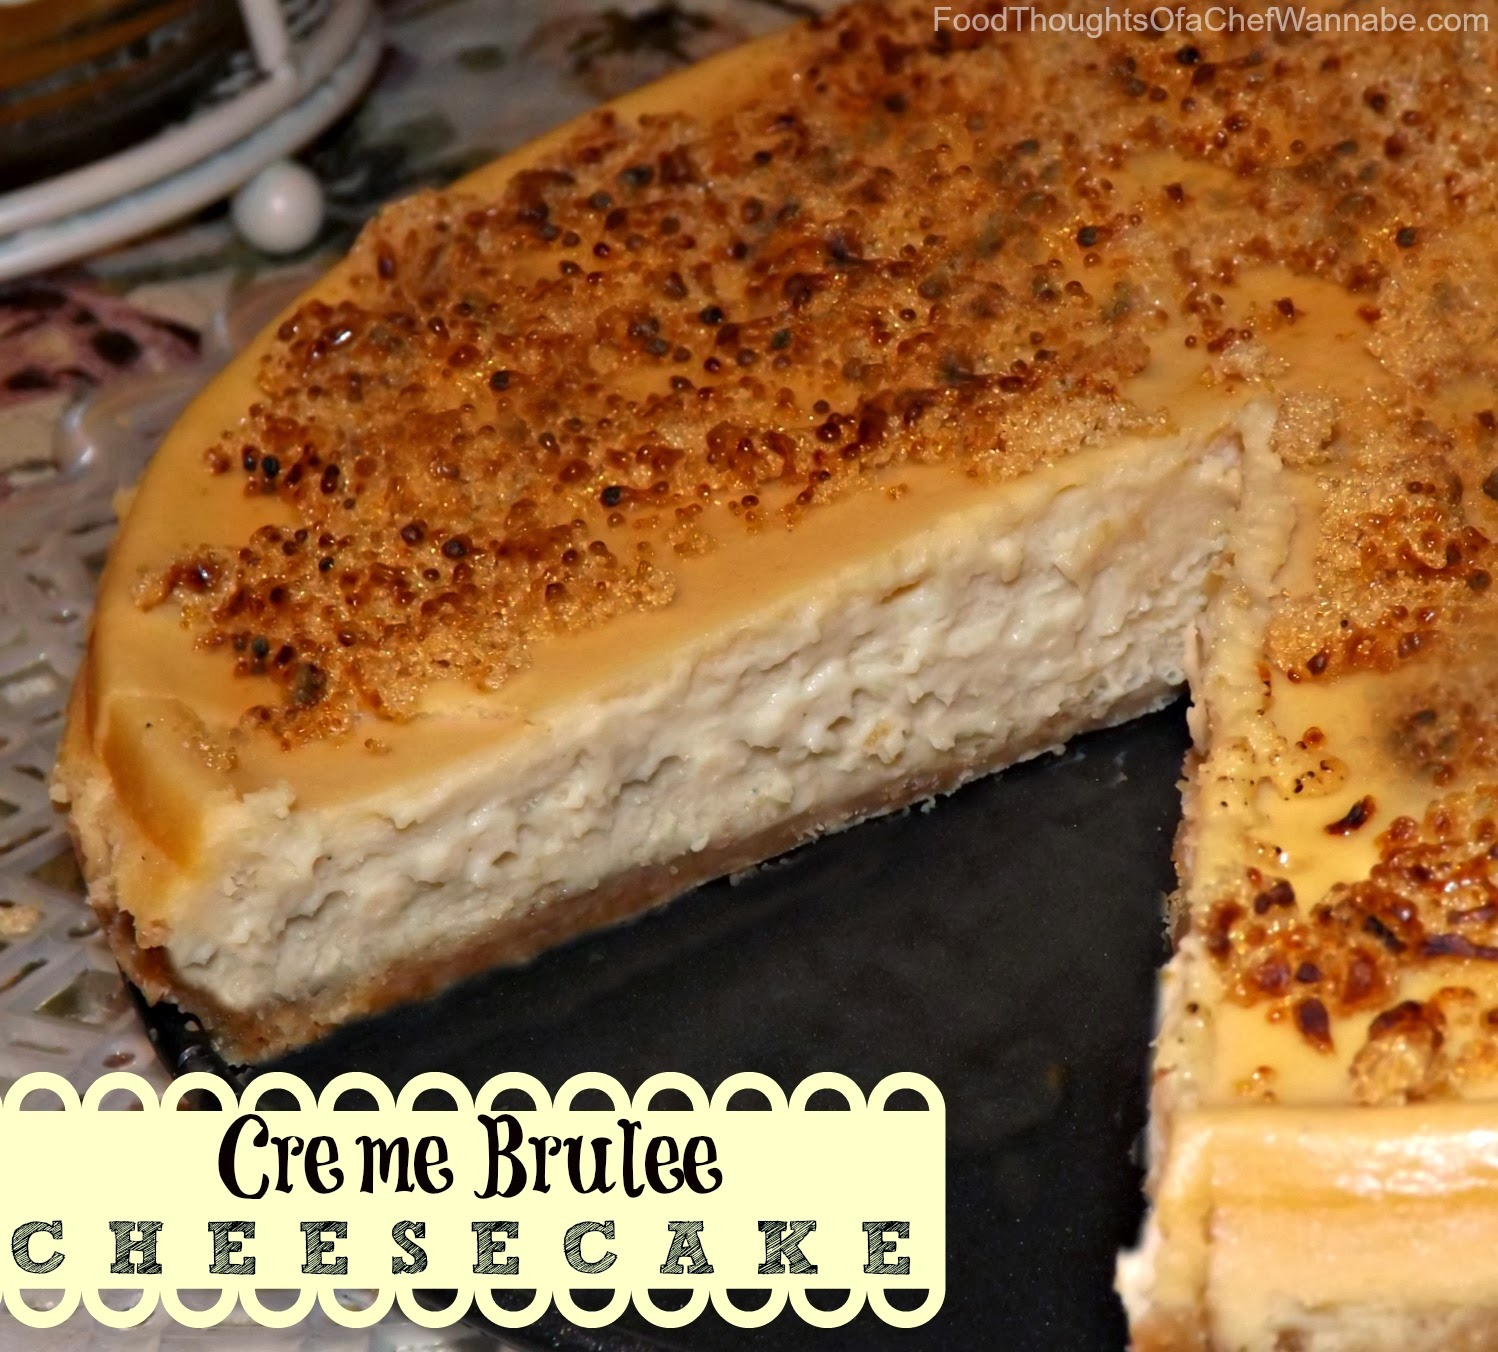 FoodThoughtsOfaChefWannabe: Creme Brulee Cheesecake